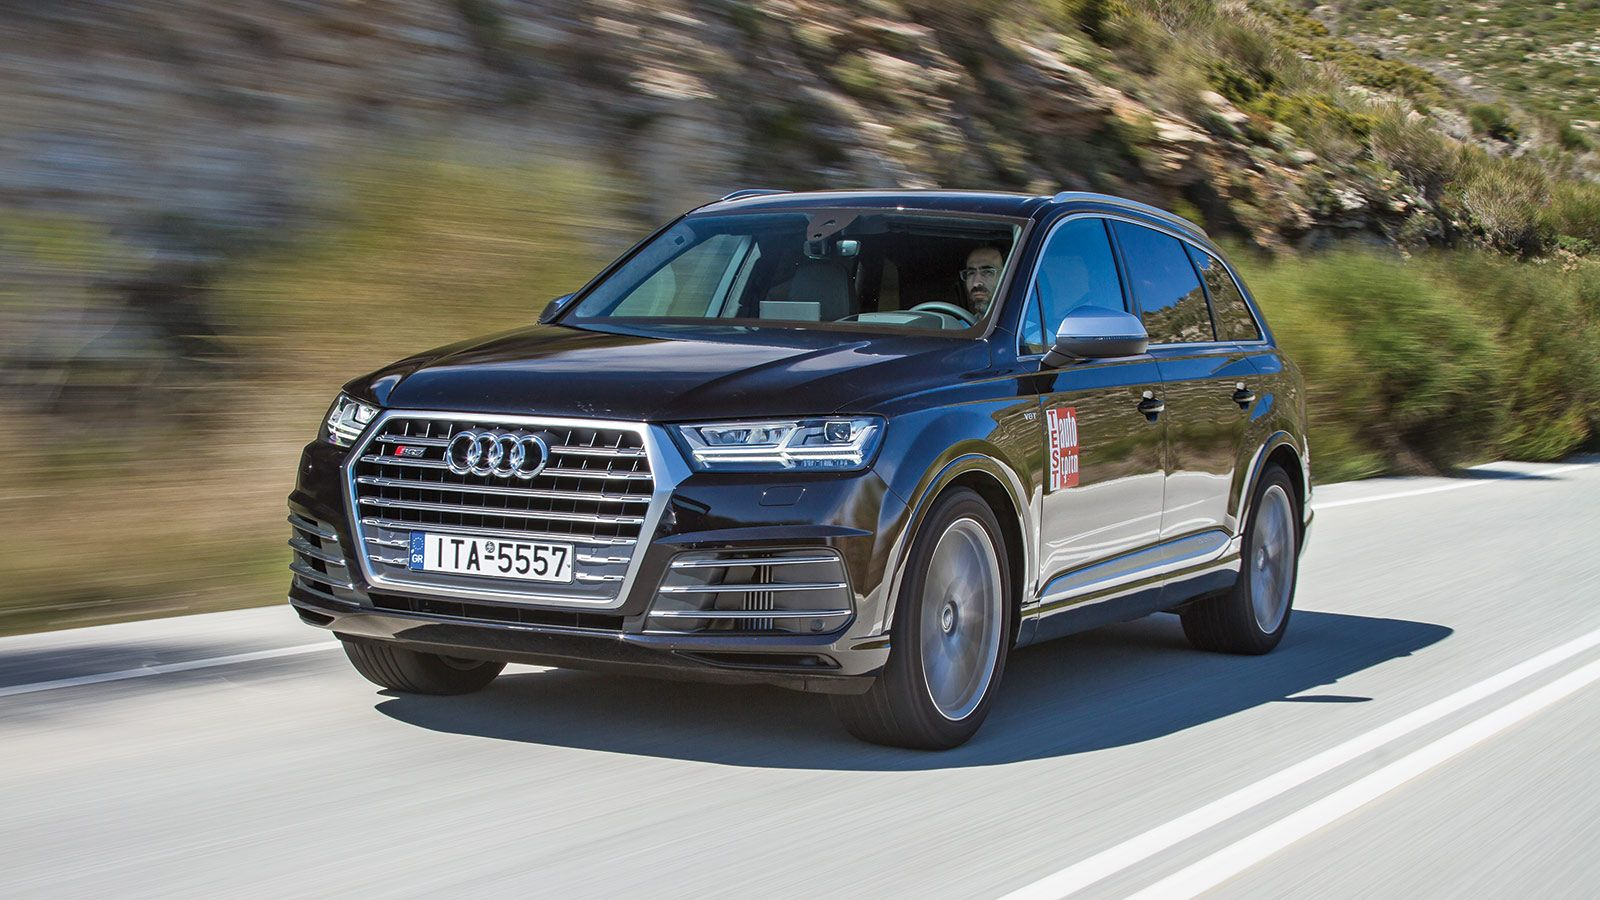 land rover urban with 5 Texnologies Poy Prepei Na Ksereis Gia To Audi Sq7 147255 on Velar likewise 12 in addition Fat Bike Electrique Noir additionally Nzv9kx8 additionally Sac A Dos Hoverboard 65.